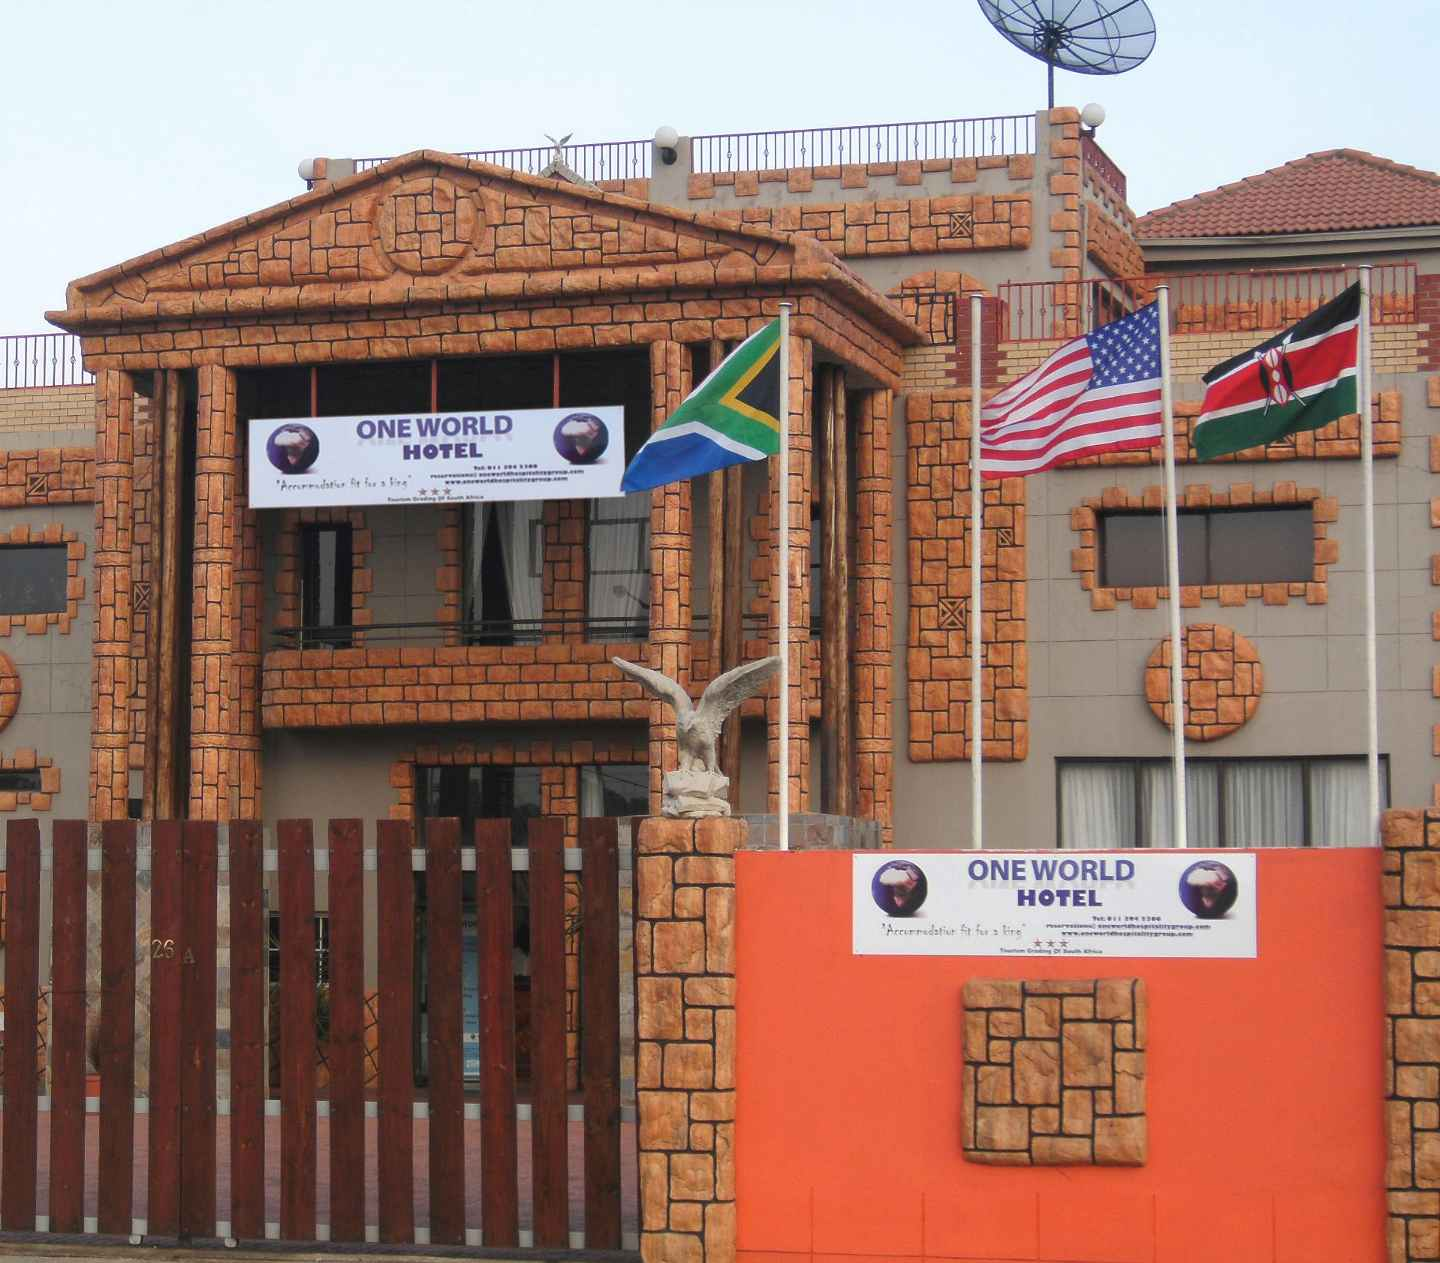 One World Hotel Kempton Park South Africa